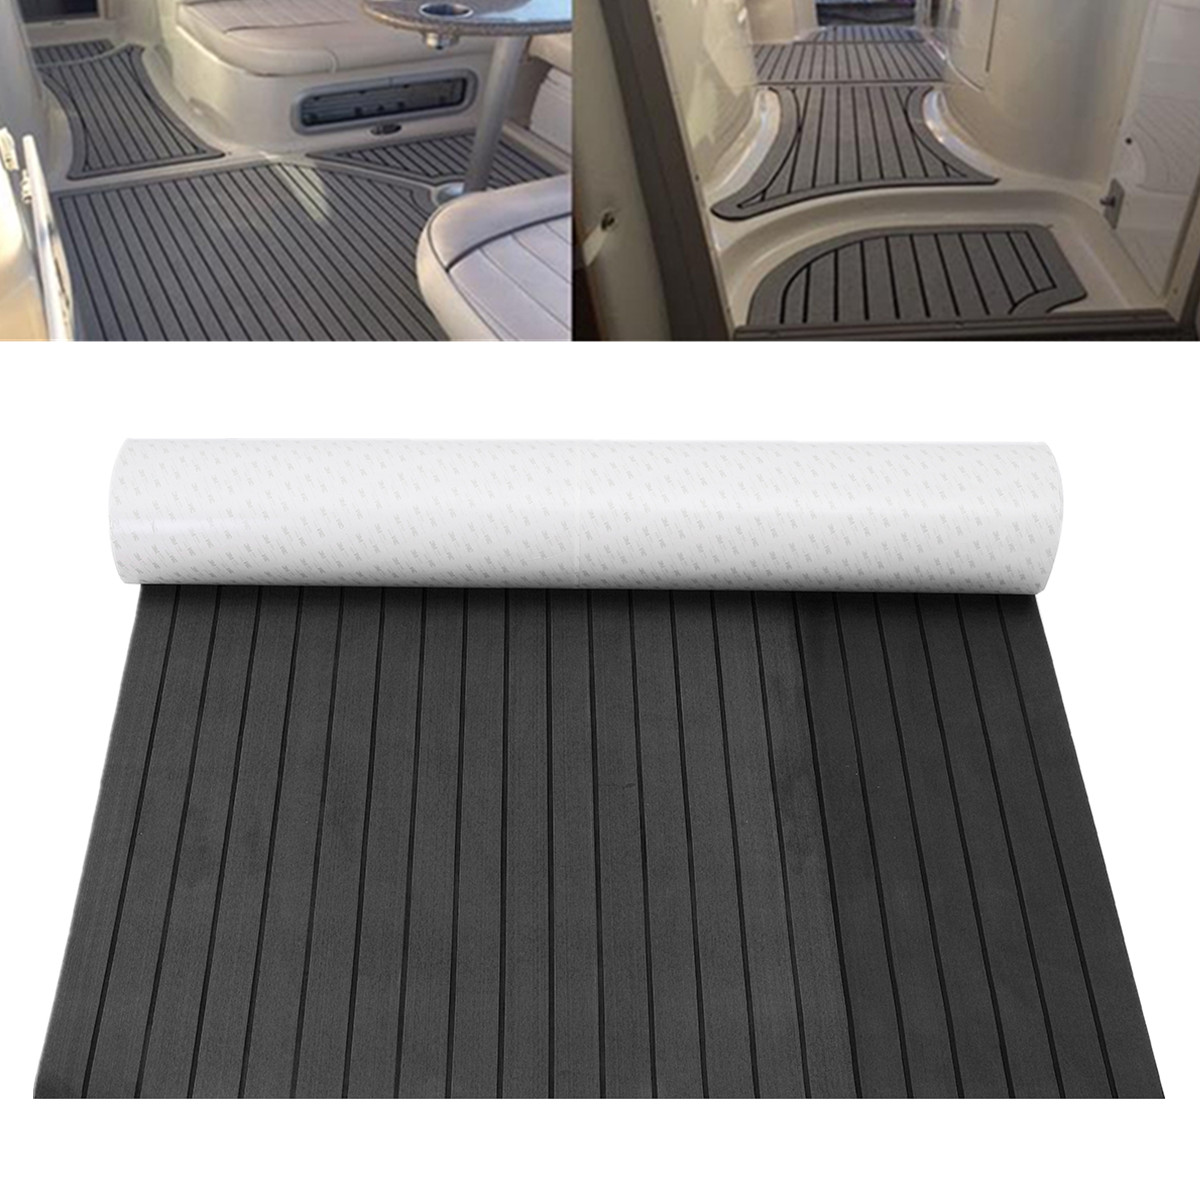 1200mmx2400mmx5mm Self Adhesive Foam Teak Decking EVA Foam Marine Flooring Faux Boat Decking Sheet Accessories Marine Dark Grey-in Marine Hardware from Automobiles & Motorcycles